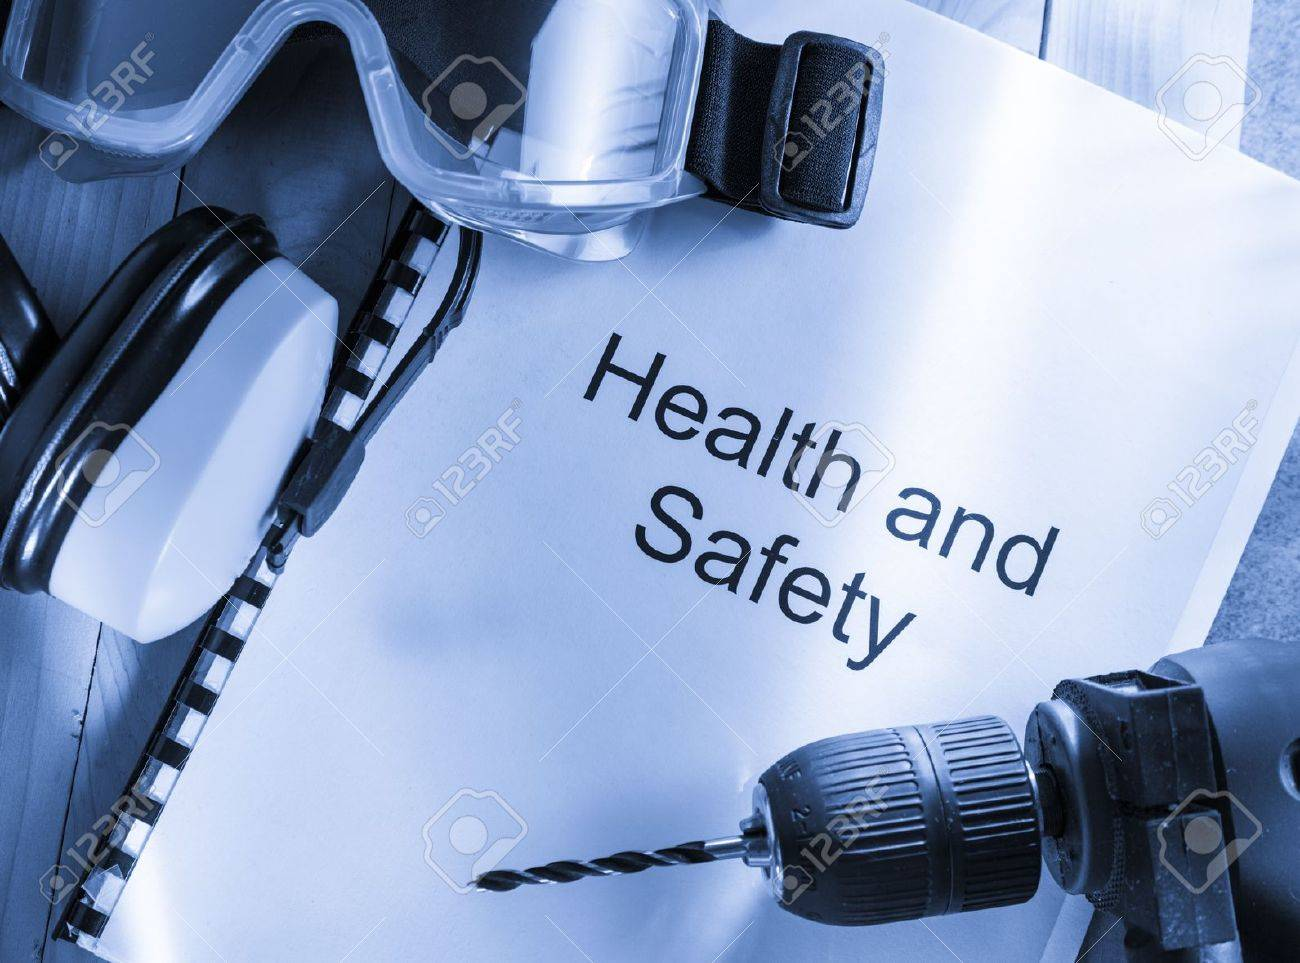 Health and safety Register with goggles, drill and earphones Stock Photo - 15495495